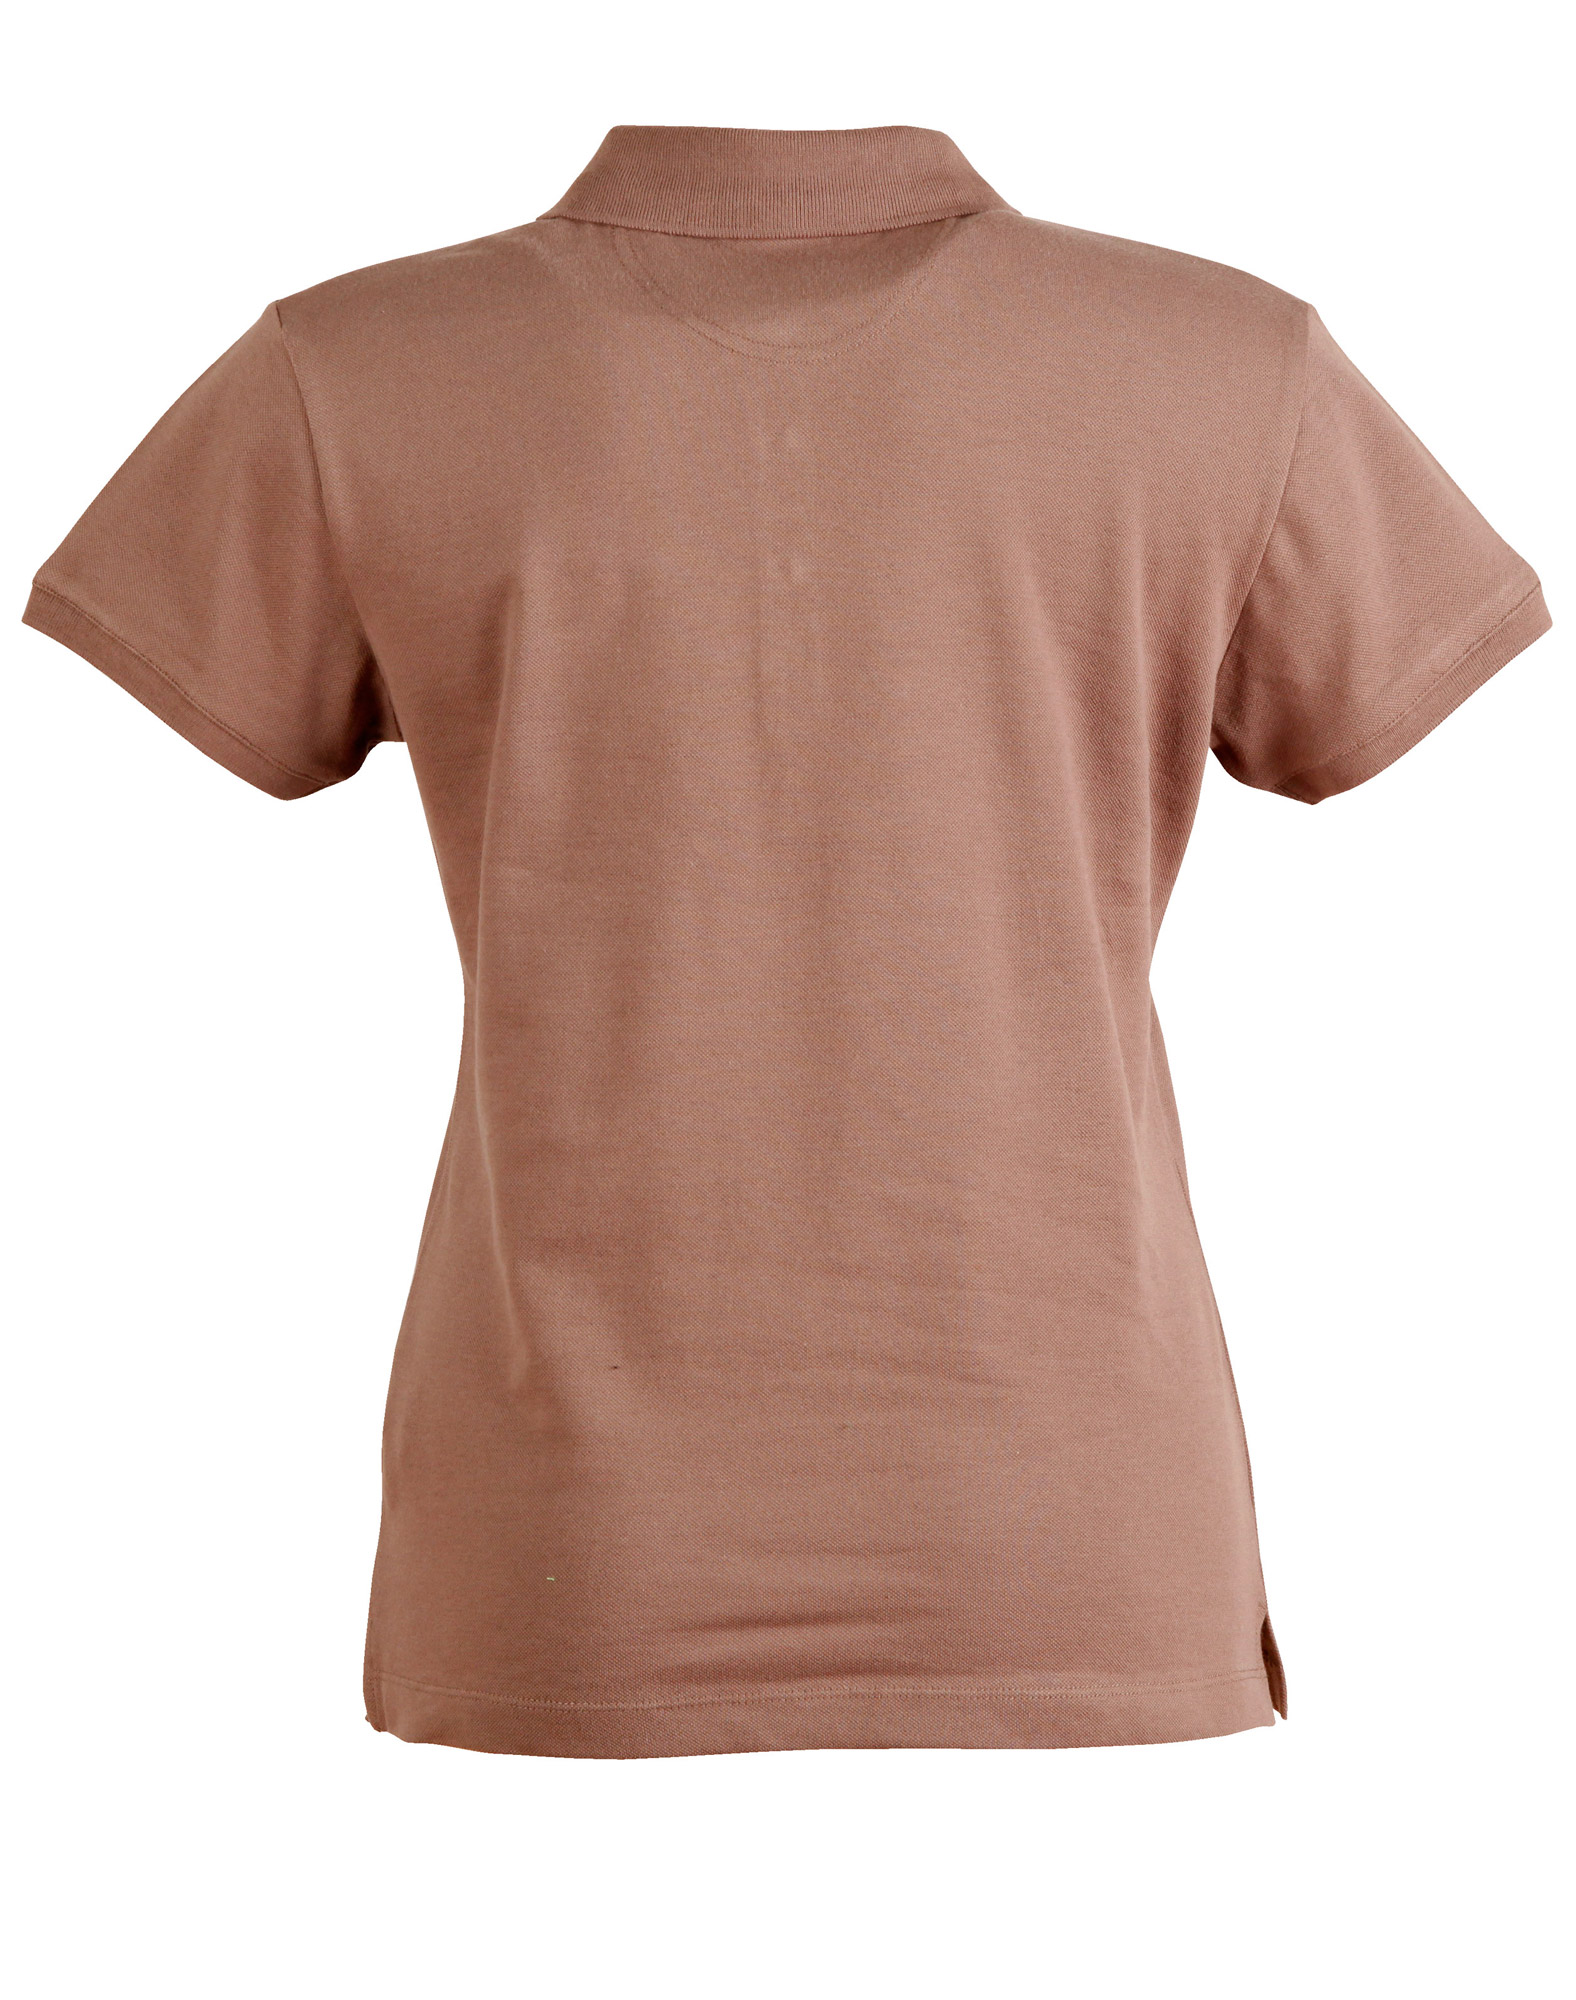 https://s3-ap-southeast-1.amazonaws.com/ws-imgs/POLOSHIRTS/PS56_SmokeBrown_Back_l.jpg